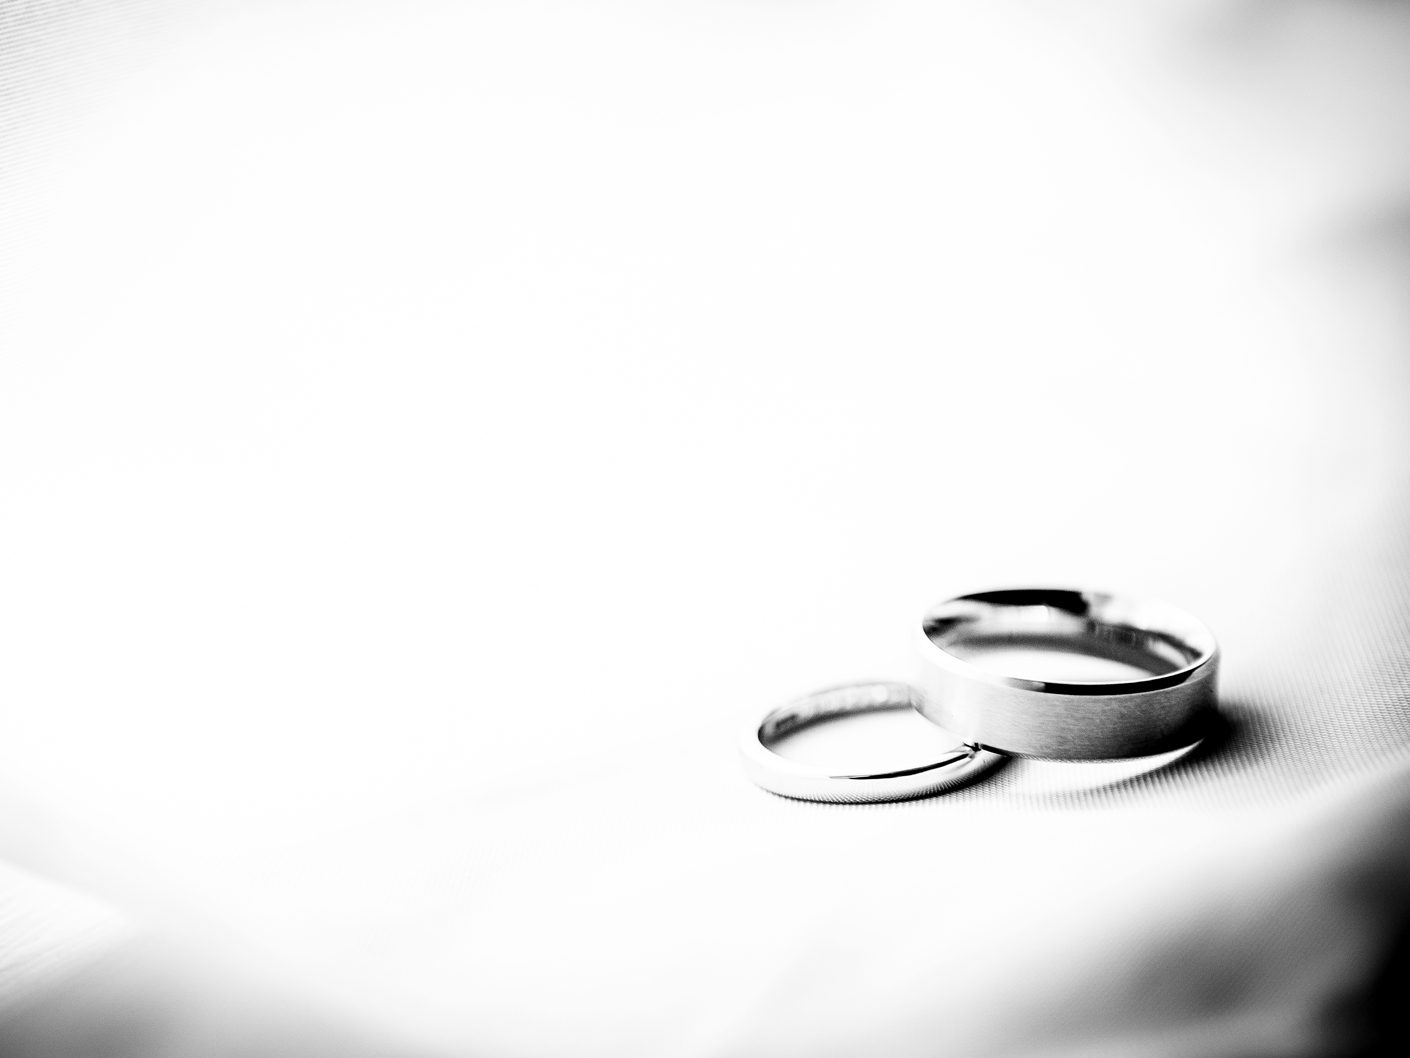 photography-of-the-rings-at-adlington-hall-macclesfield-cheshire